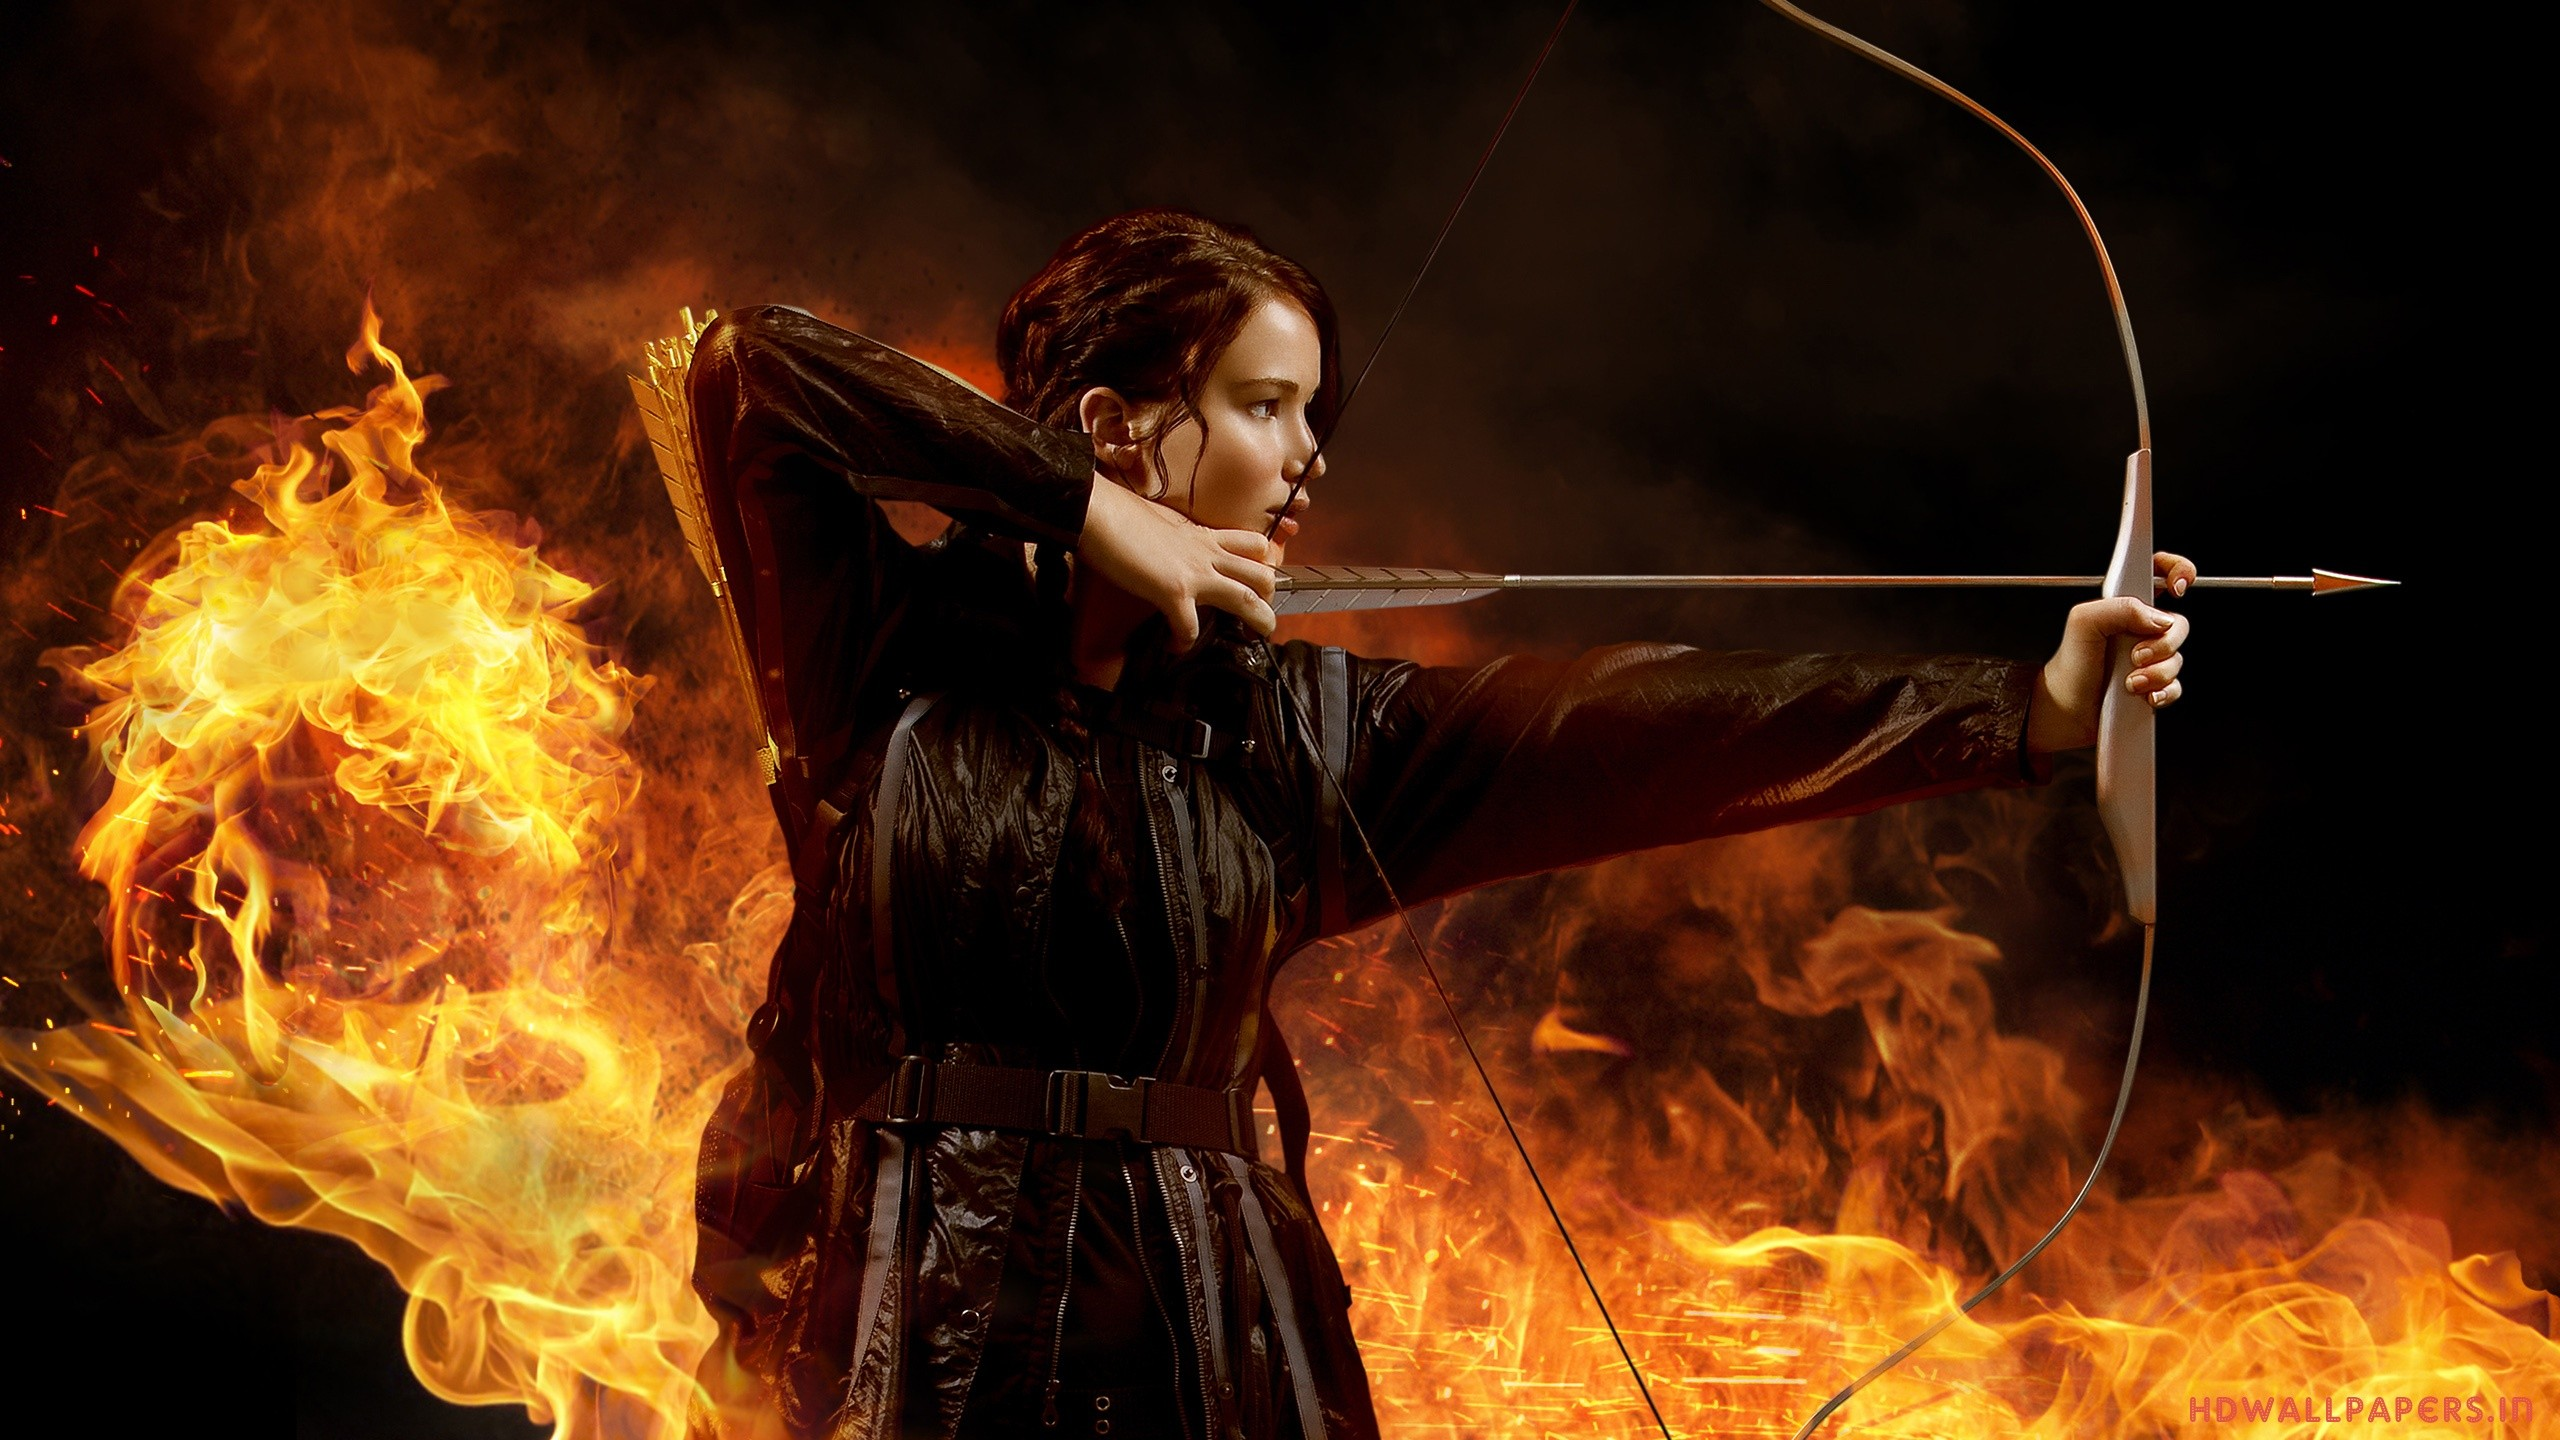 Hunger Games Bow and Arrow